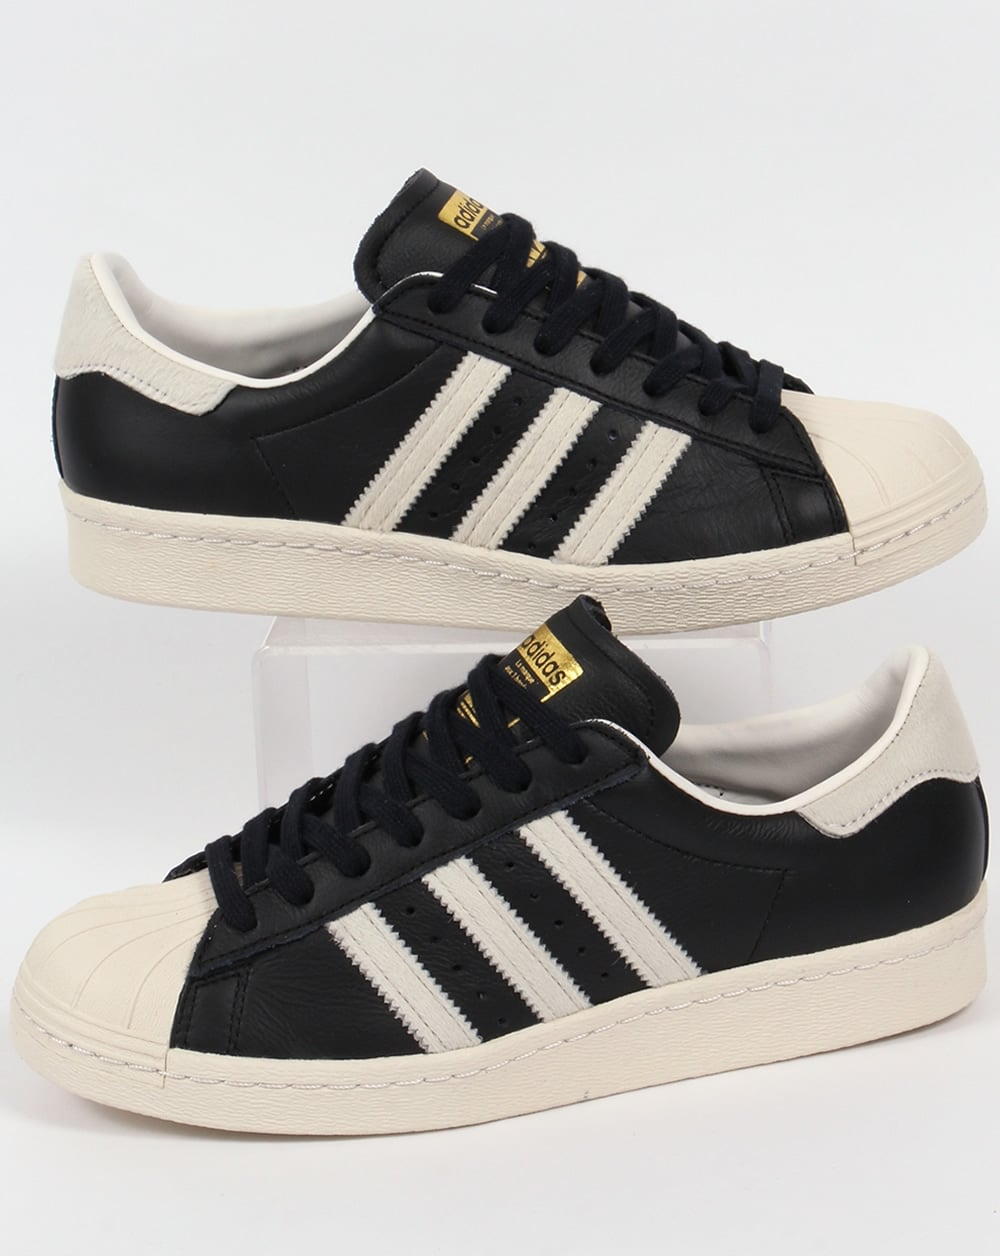 adidas Superstar 80s DLX Suede Originals B35988 Sneaker